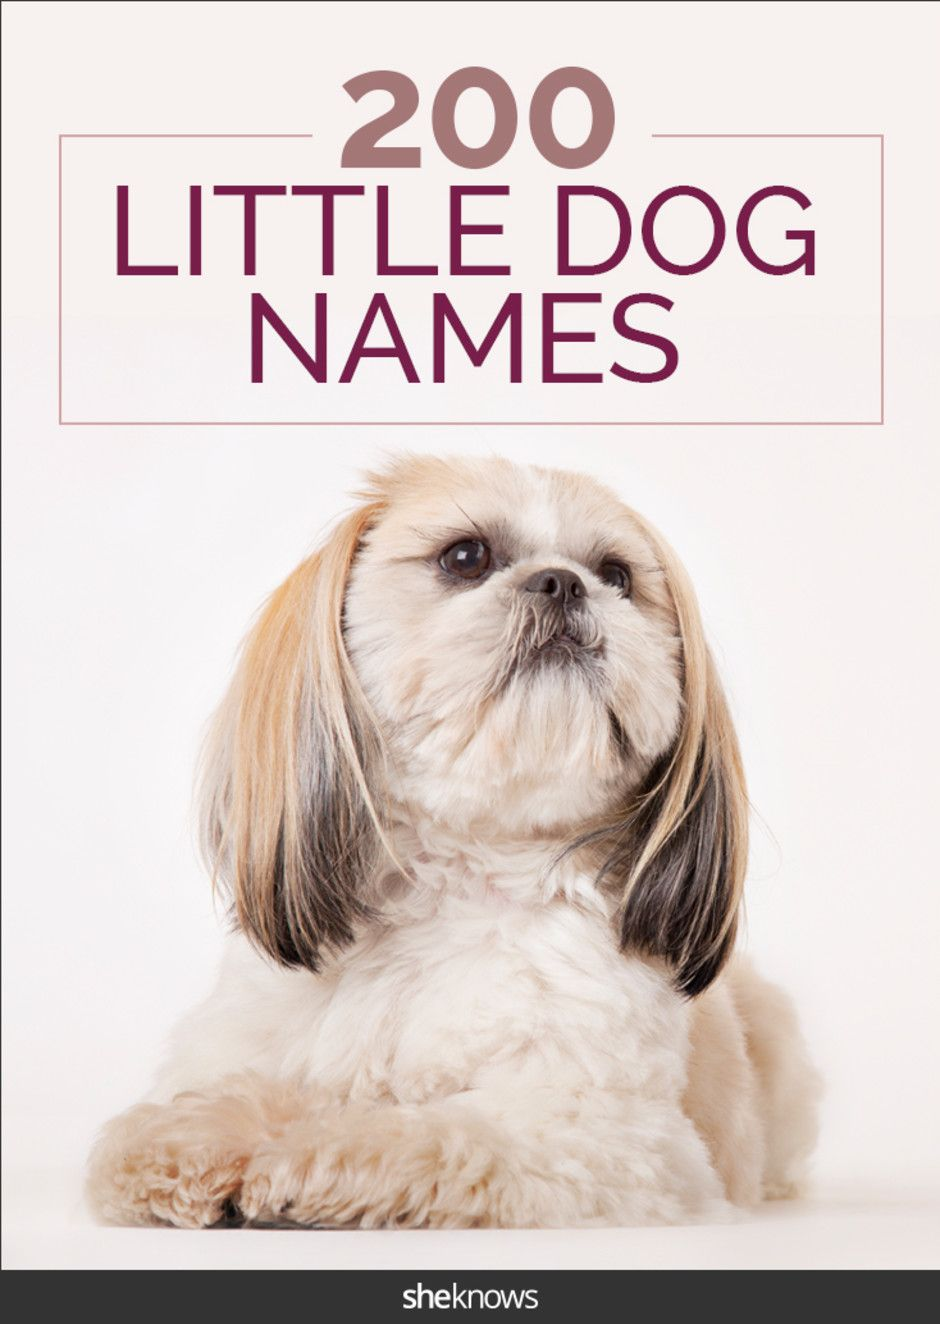 These cute dog names are perfect for tiny canines with